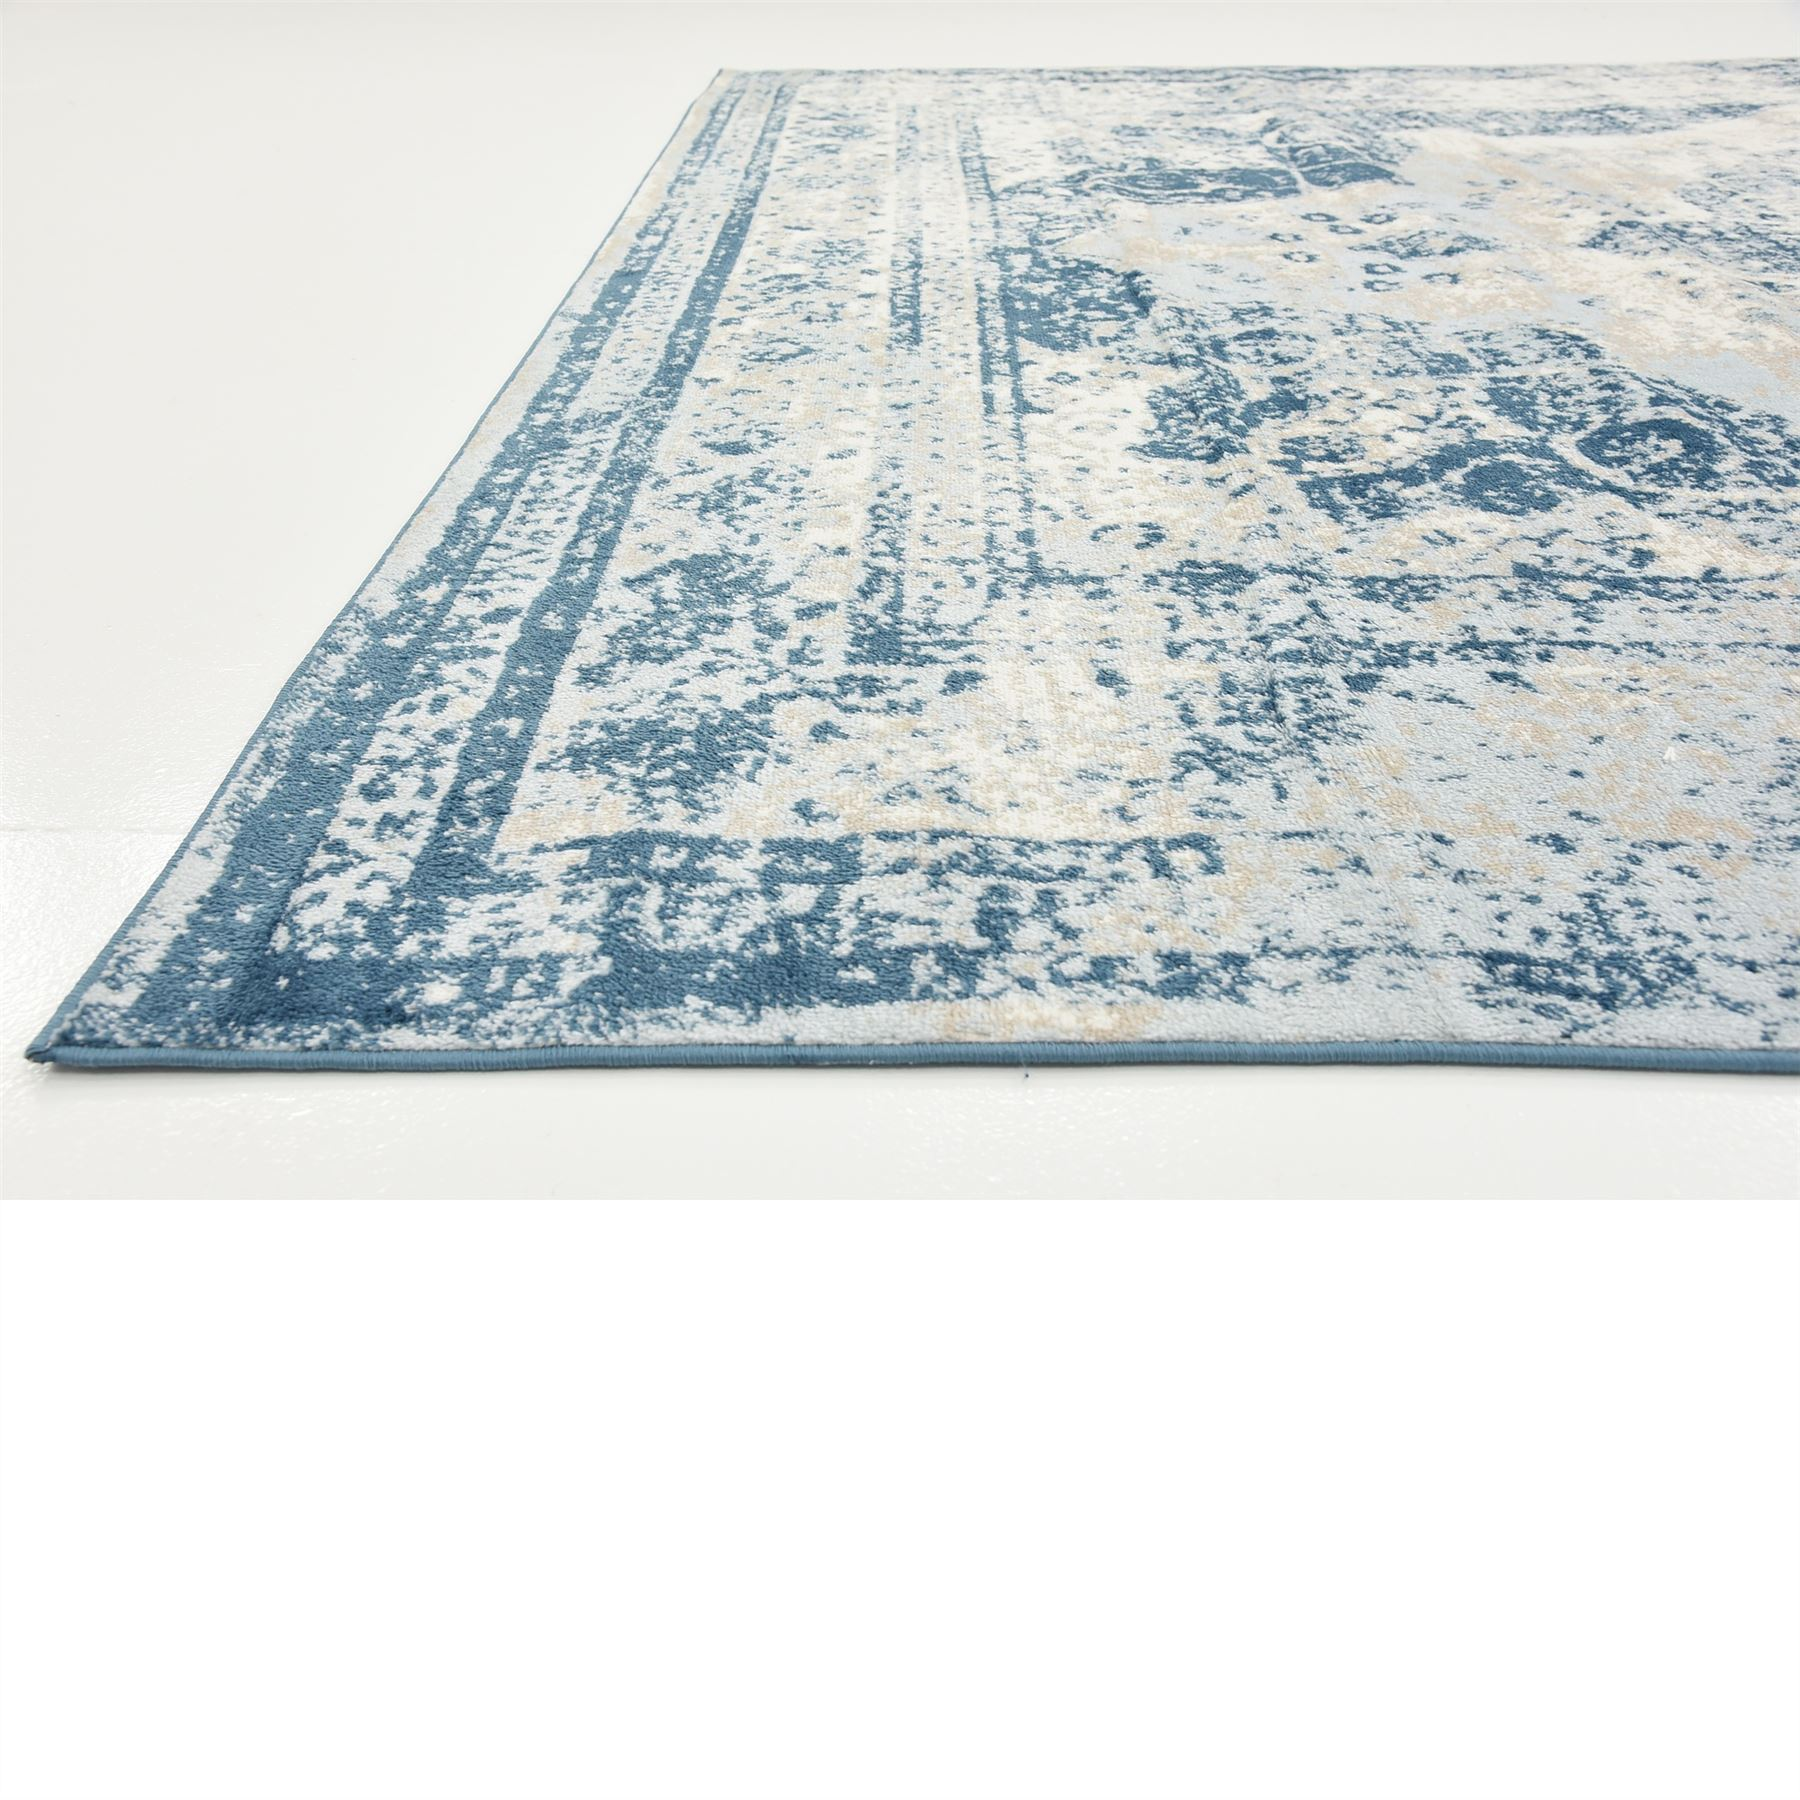 Traditional-Inspired-Persian-Faded-Transitional-Area-Rug-Multi-Color-ALL-SIZES thumbnail 15